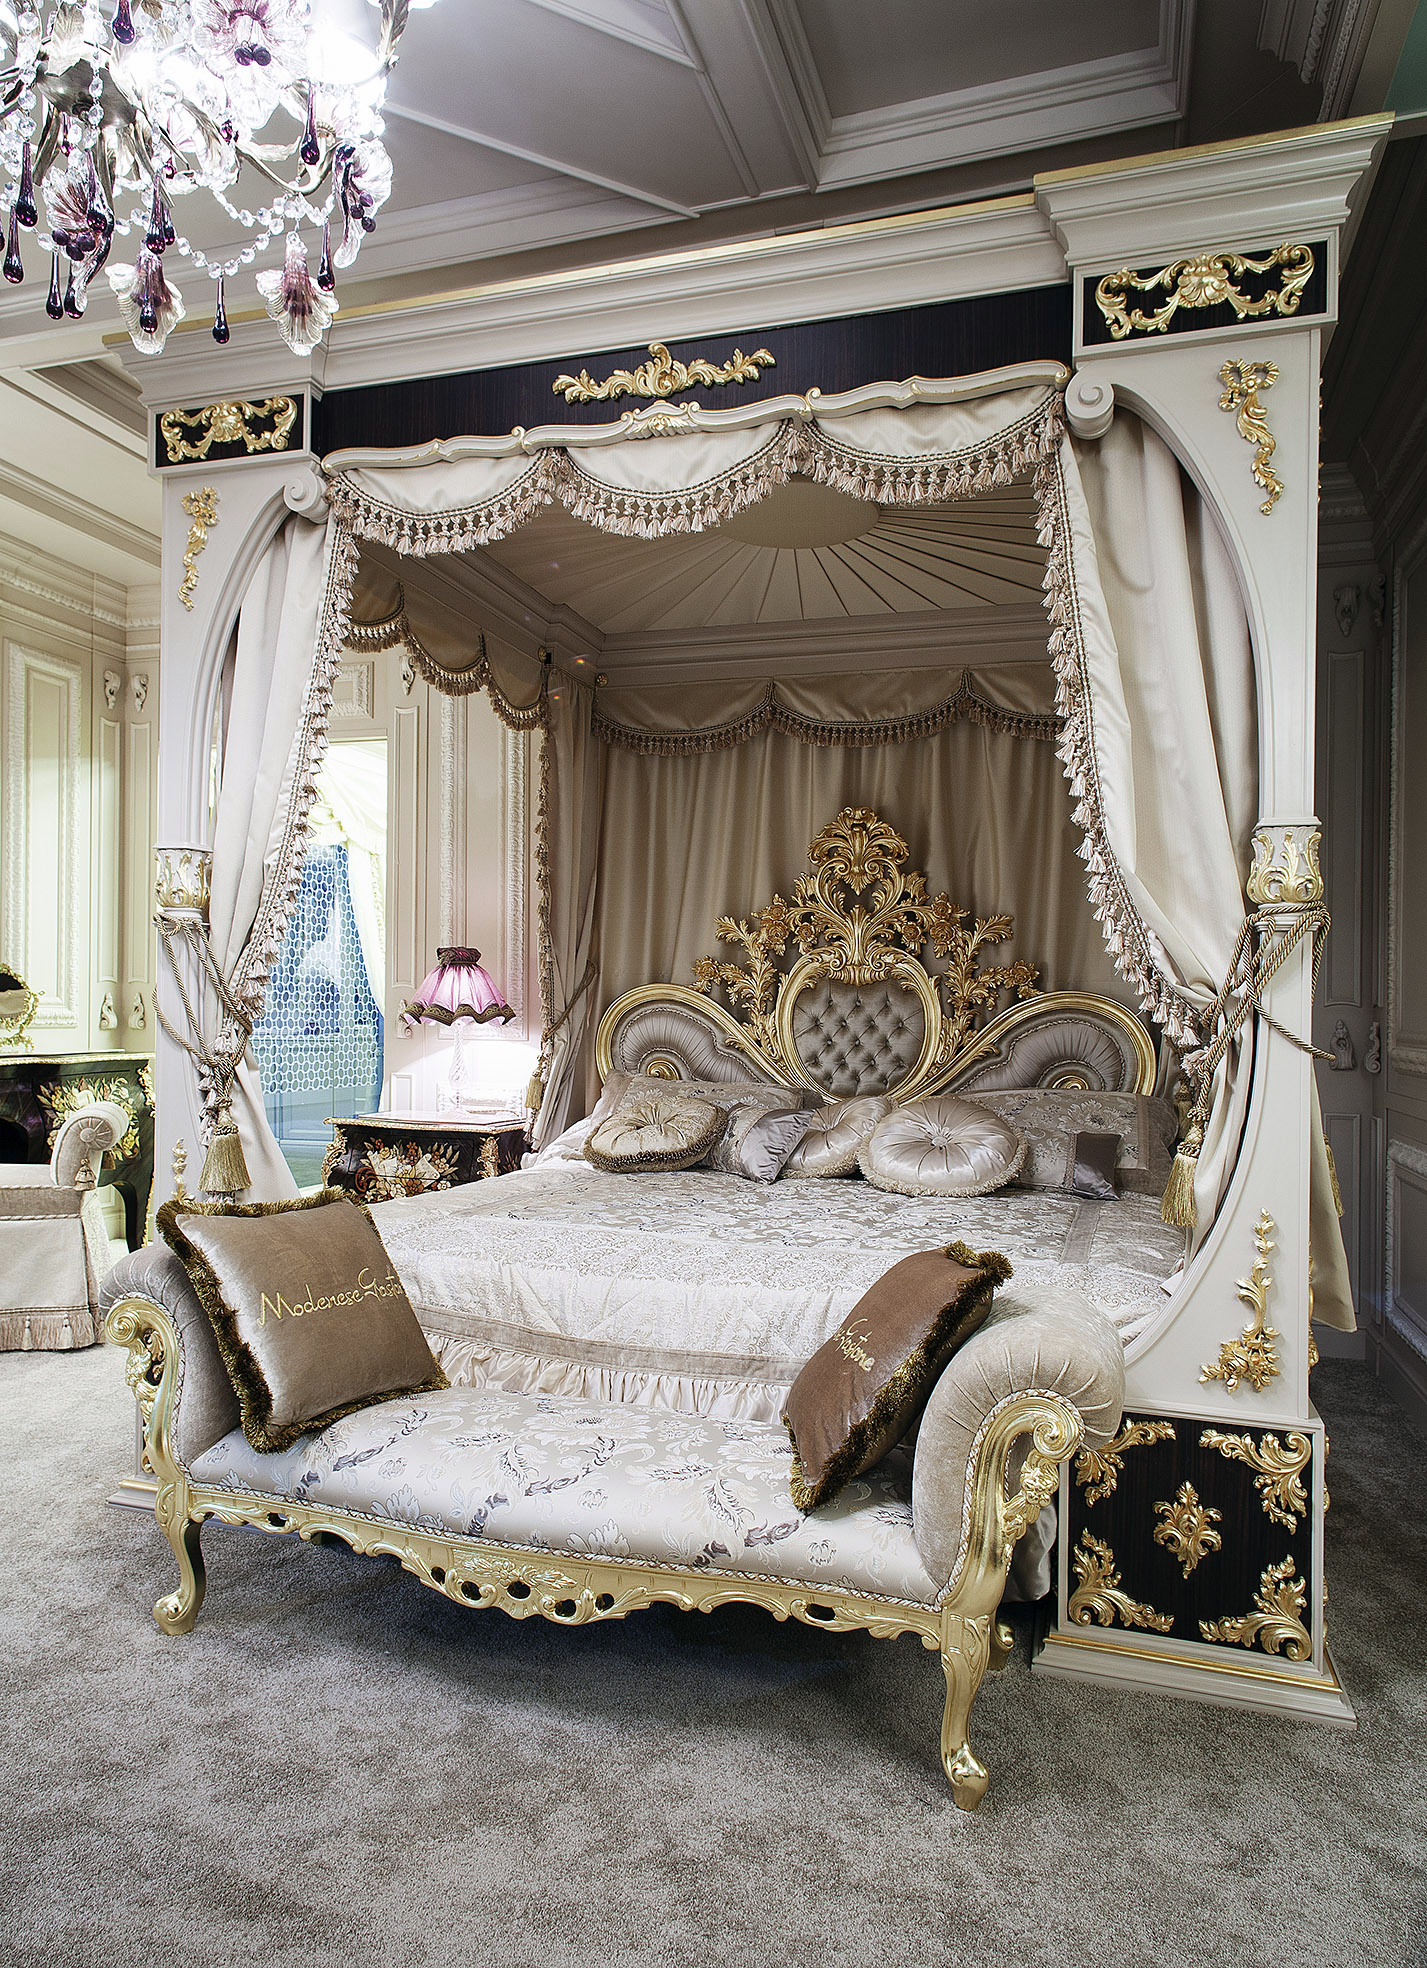 Luxury Classic Bedroom For Royal Family